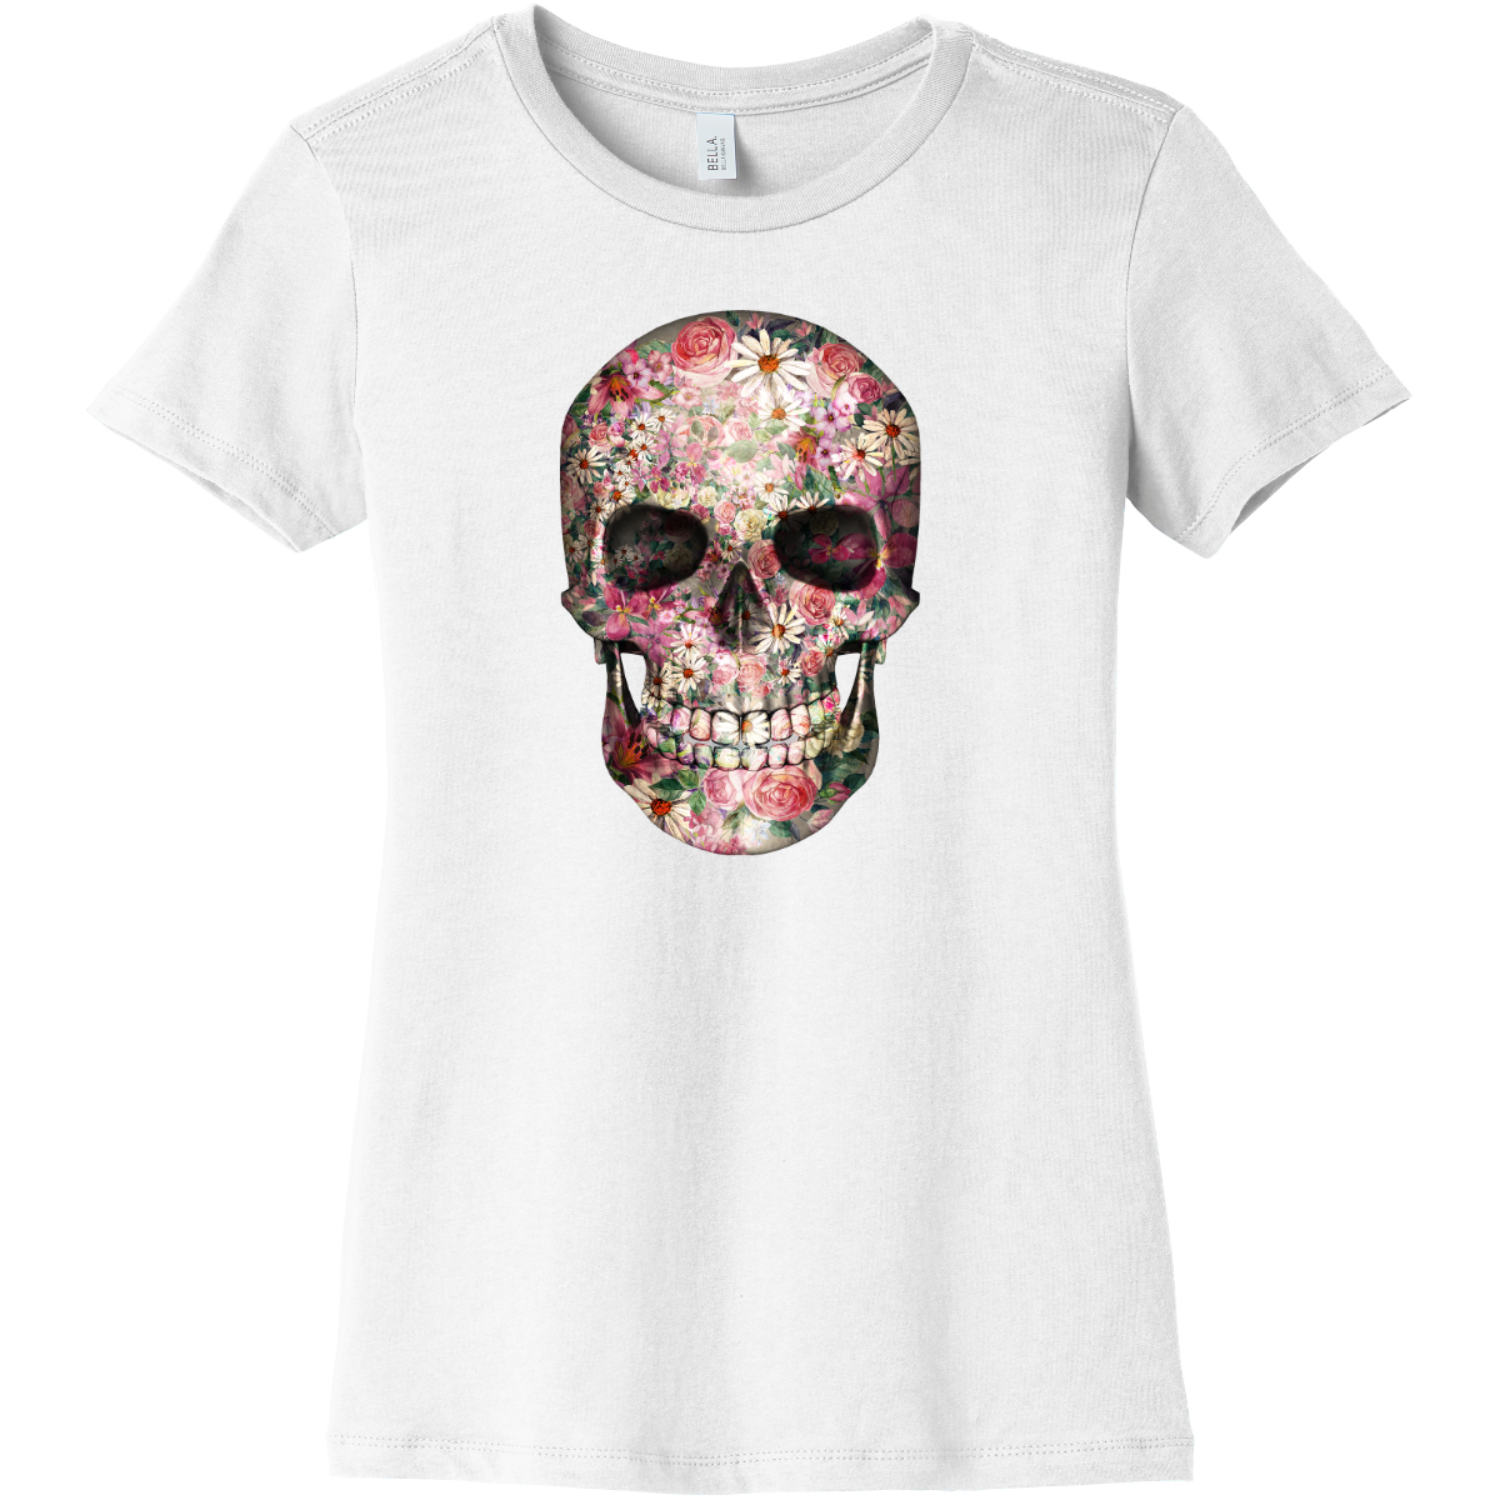 Floral Skull T Shirt For Women White Bella Canvas 6004 Ladies The Favorite Tee